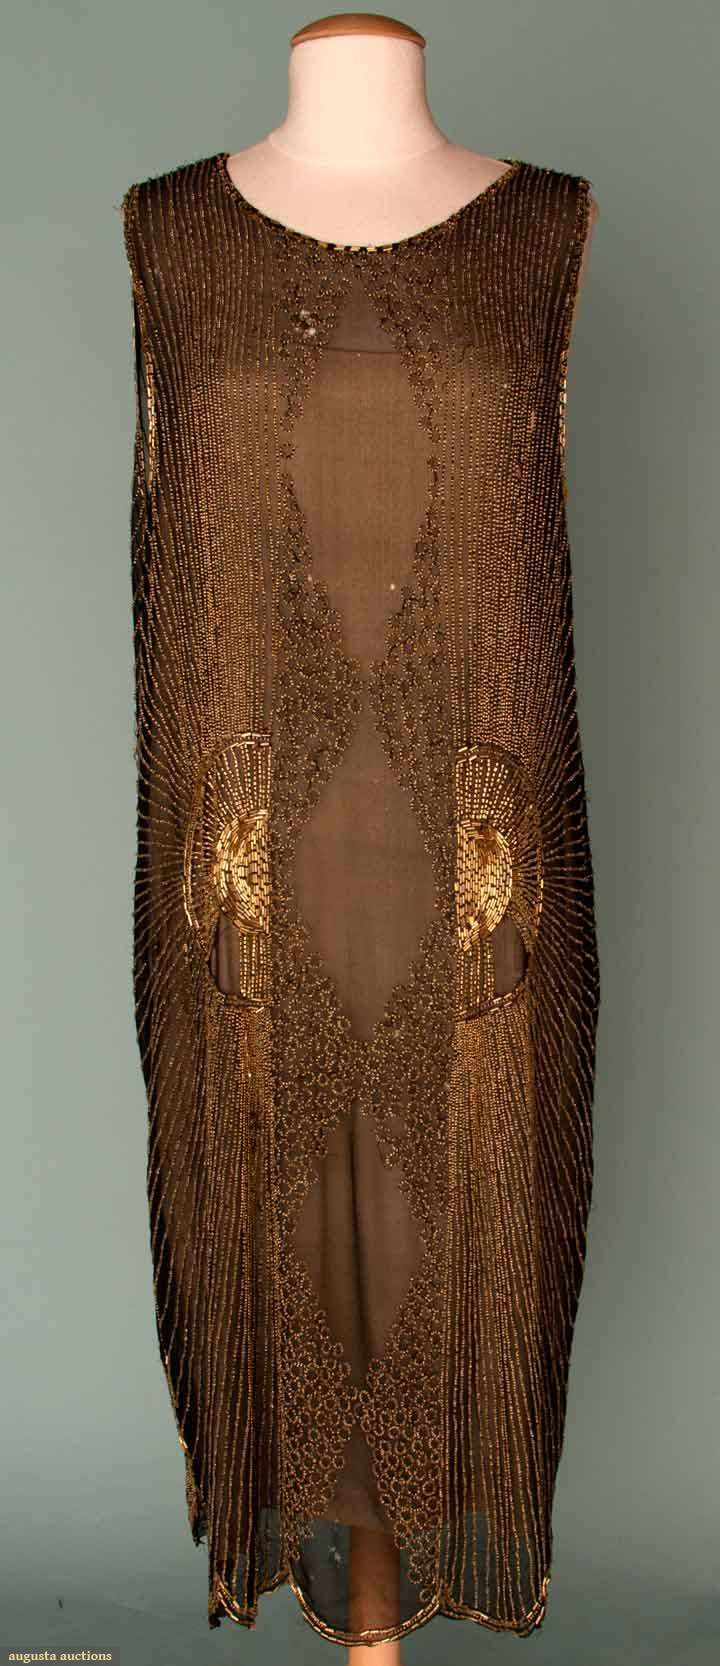 GOLD BEADED PARTY DRESS, MID 1920s  Black silk chiffon, gold bead design in radiating center sun, small rings around voided diamond center shapes.